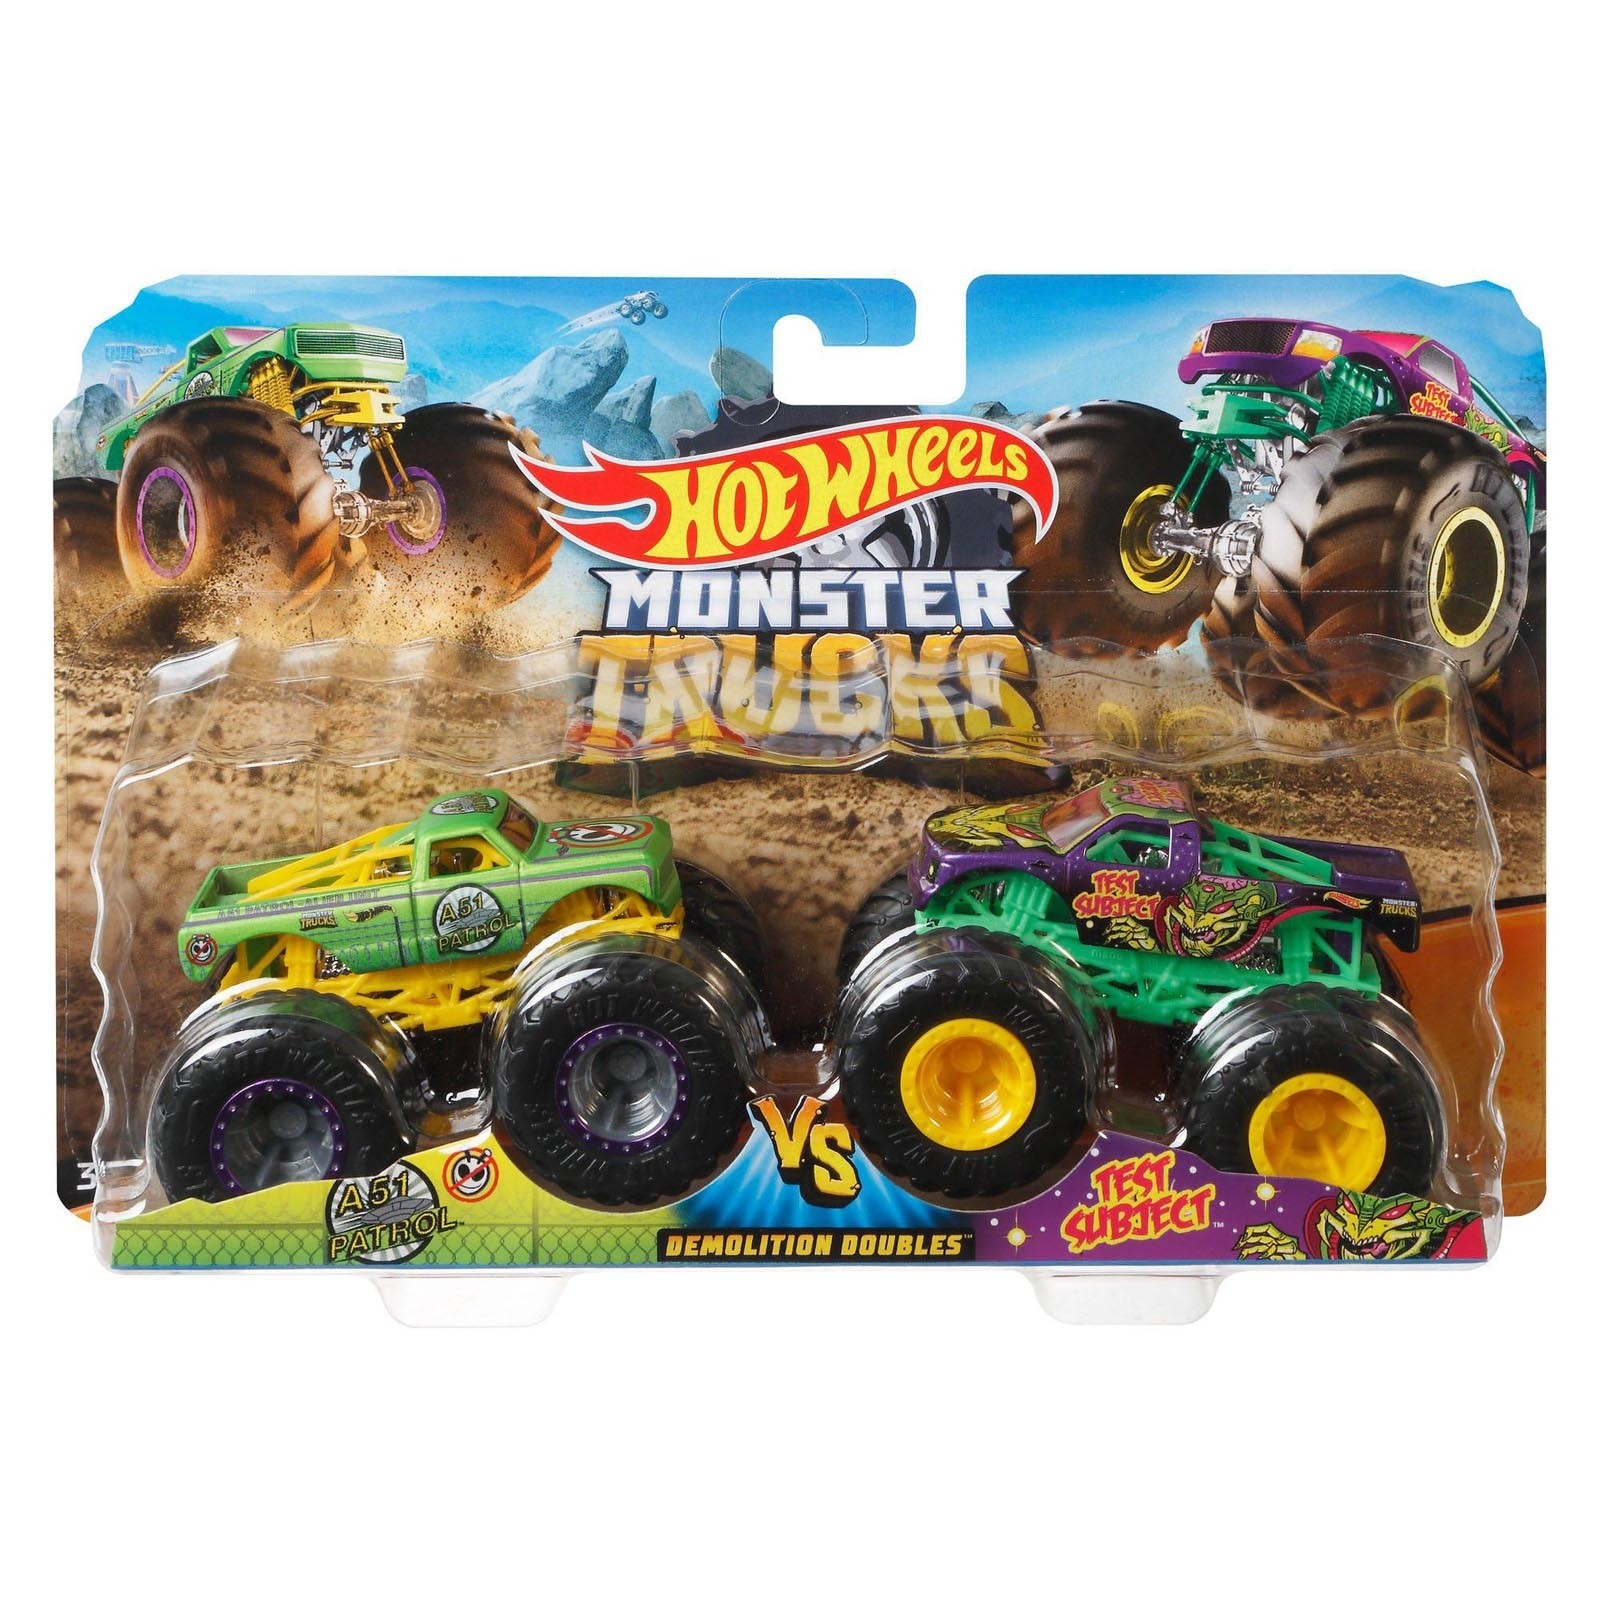 Pack com 2 Hot Wheels - 1:64 - A51 Patrol vx Test Subject - Monster Trucks - GJF67